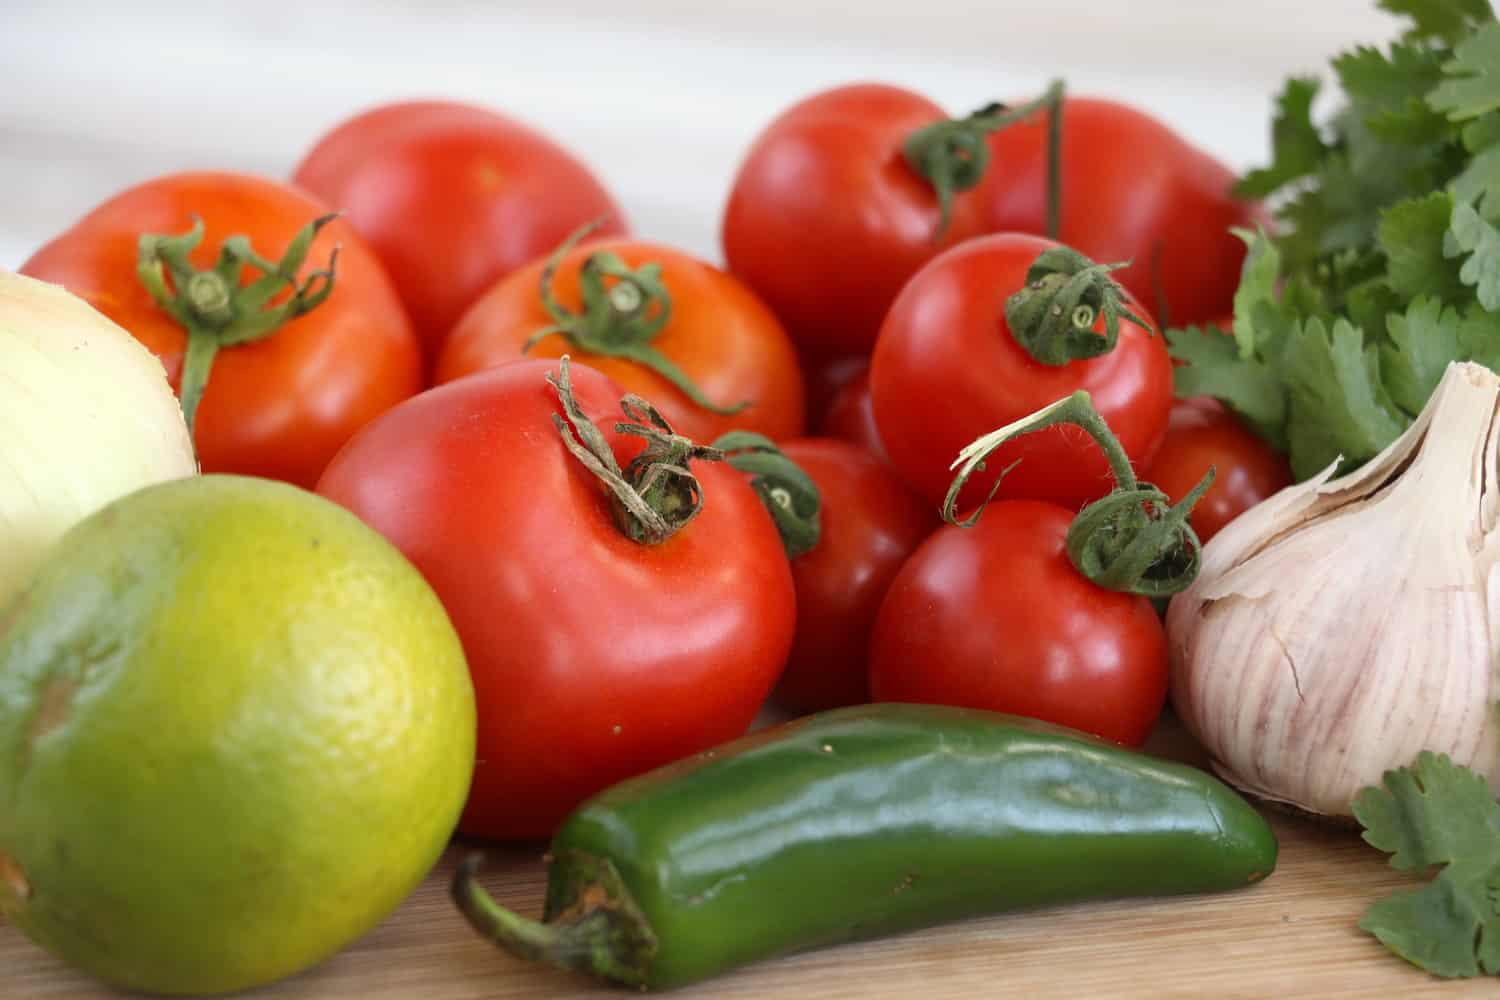 Homemade salsa recipe with fresh tomatoes